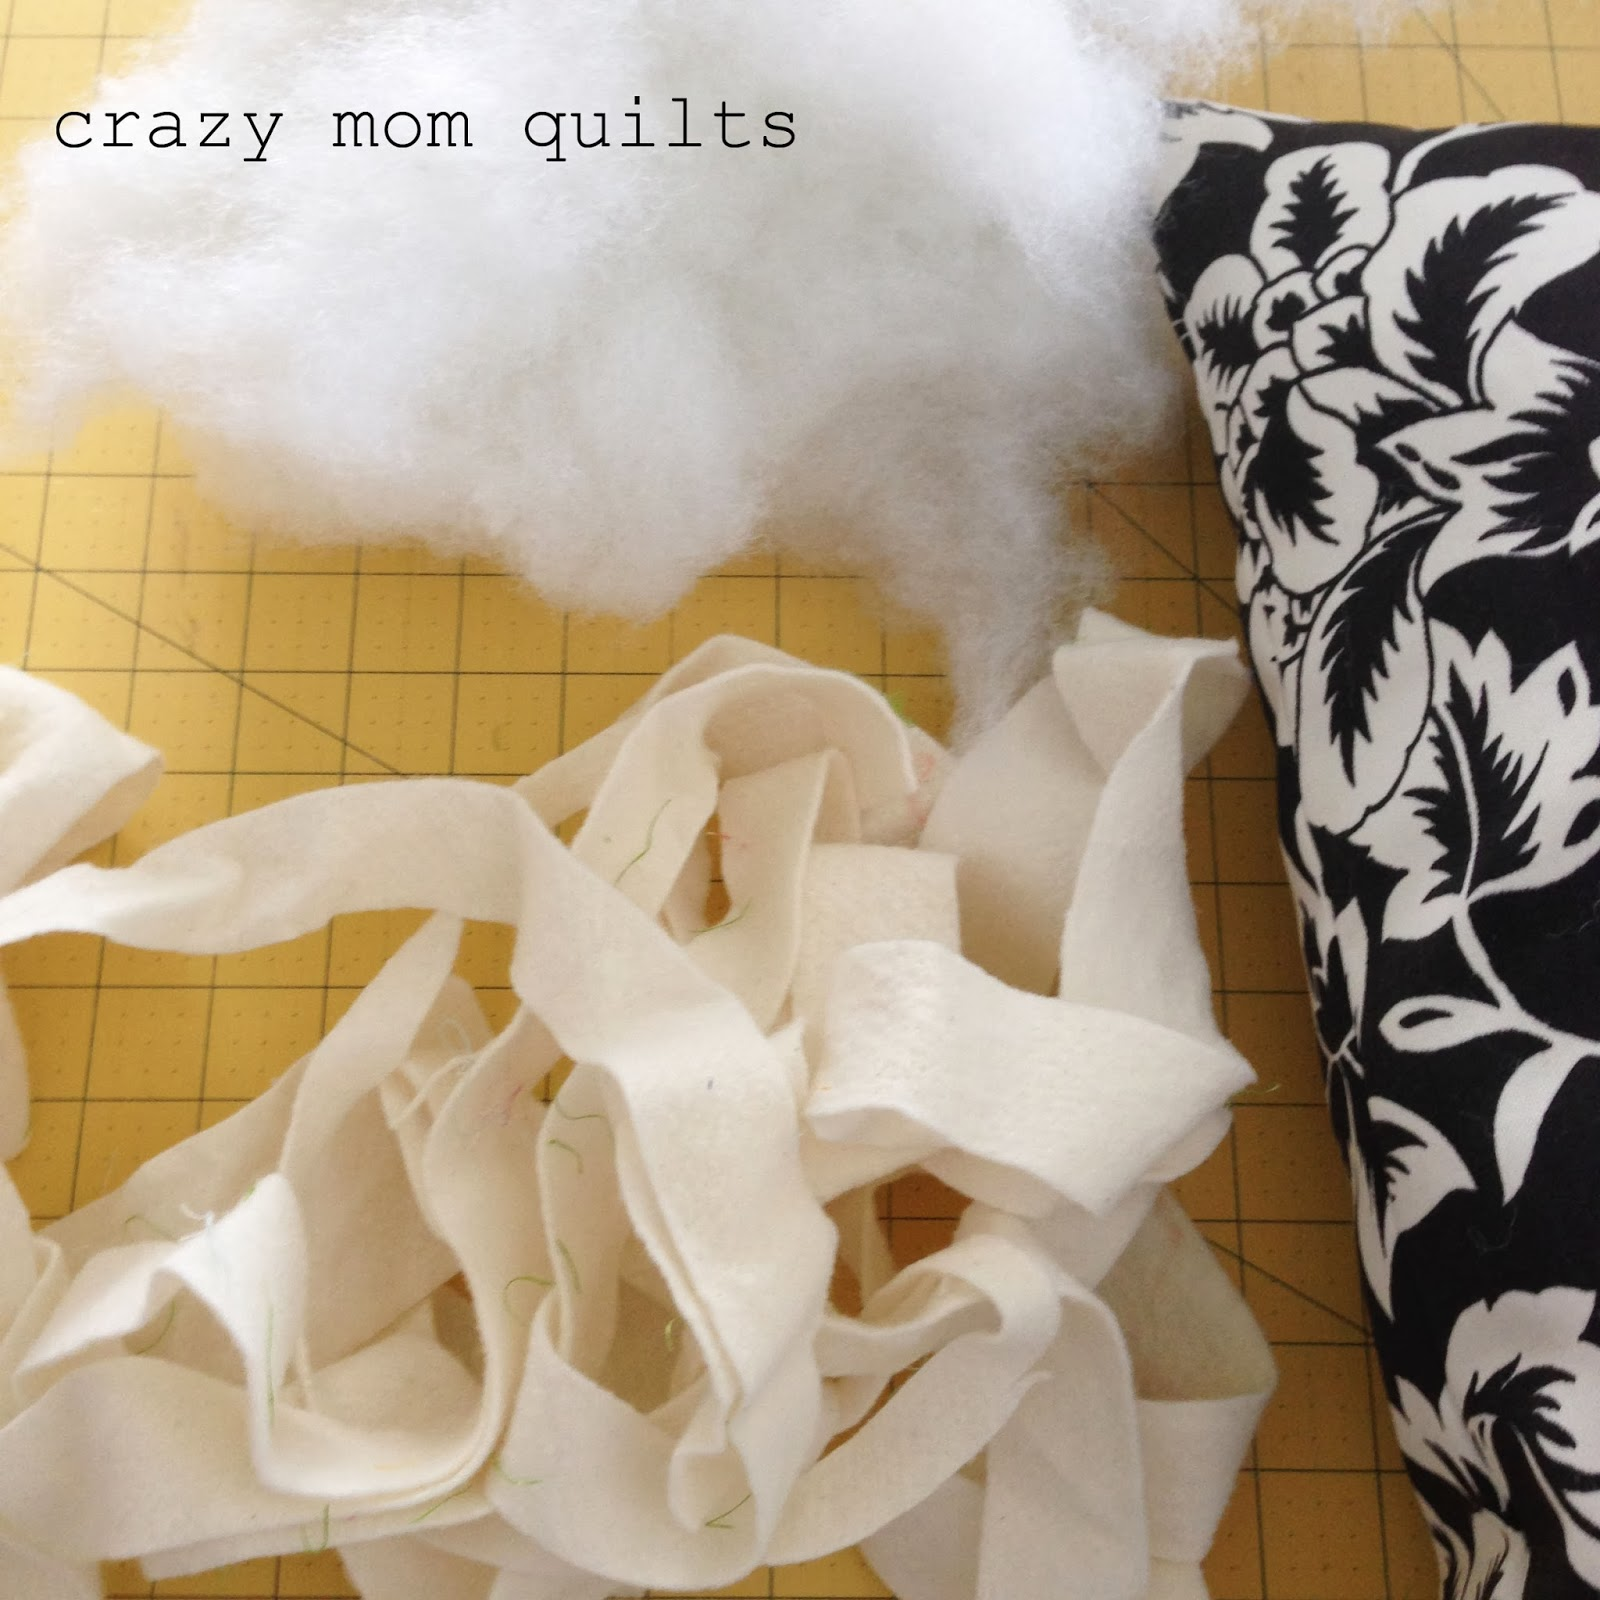 pillow stuffing and batting scraps